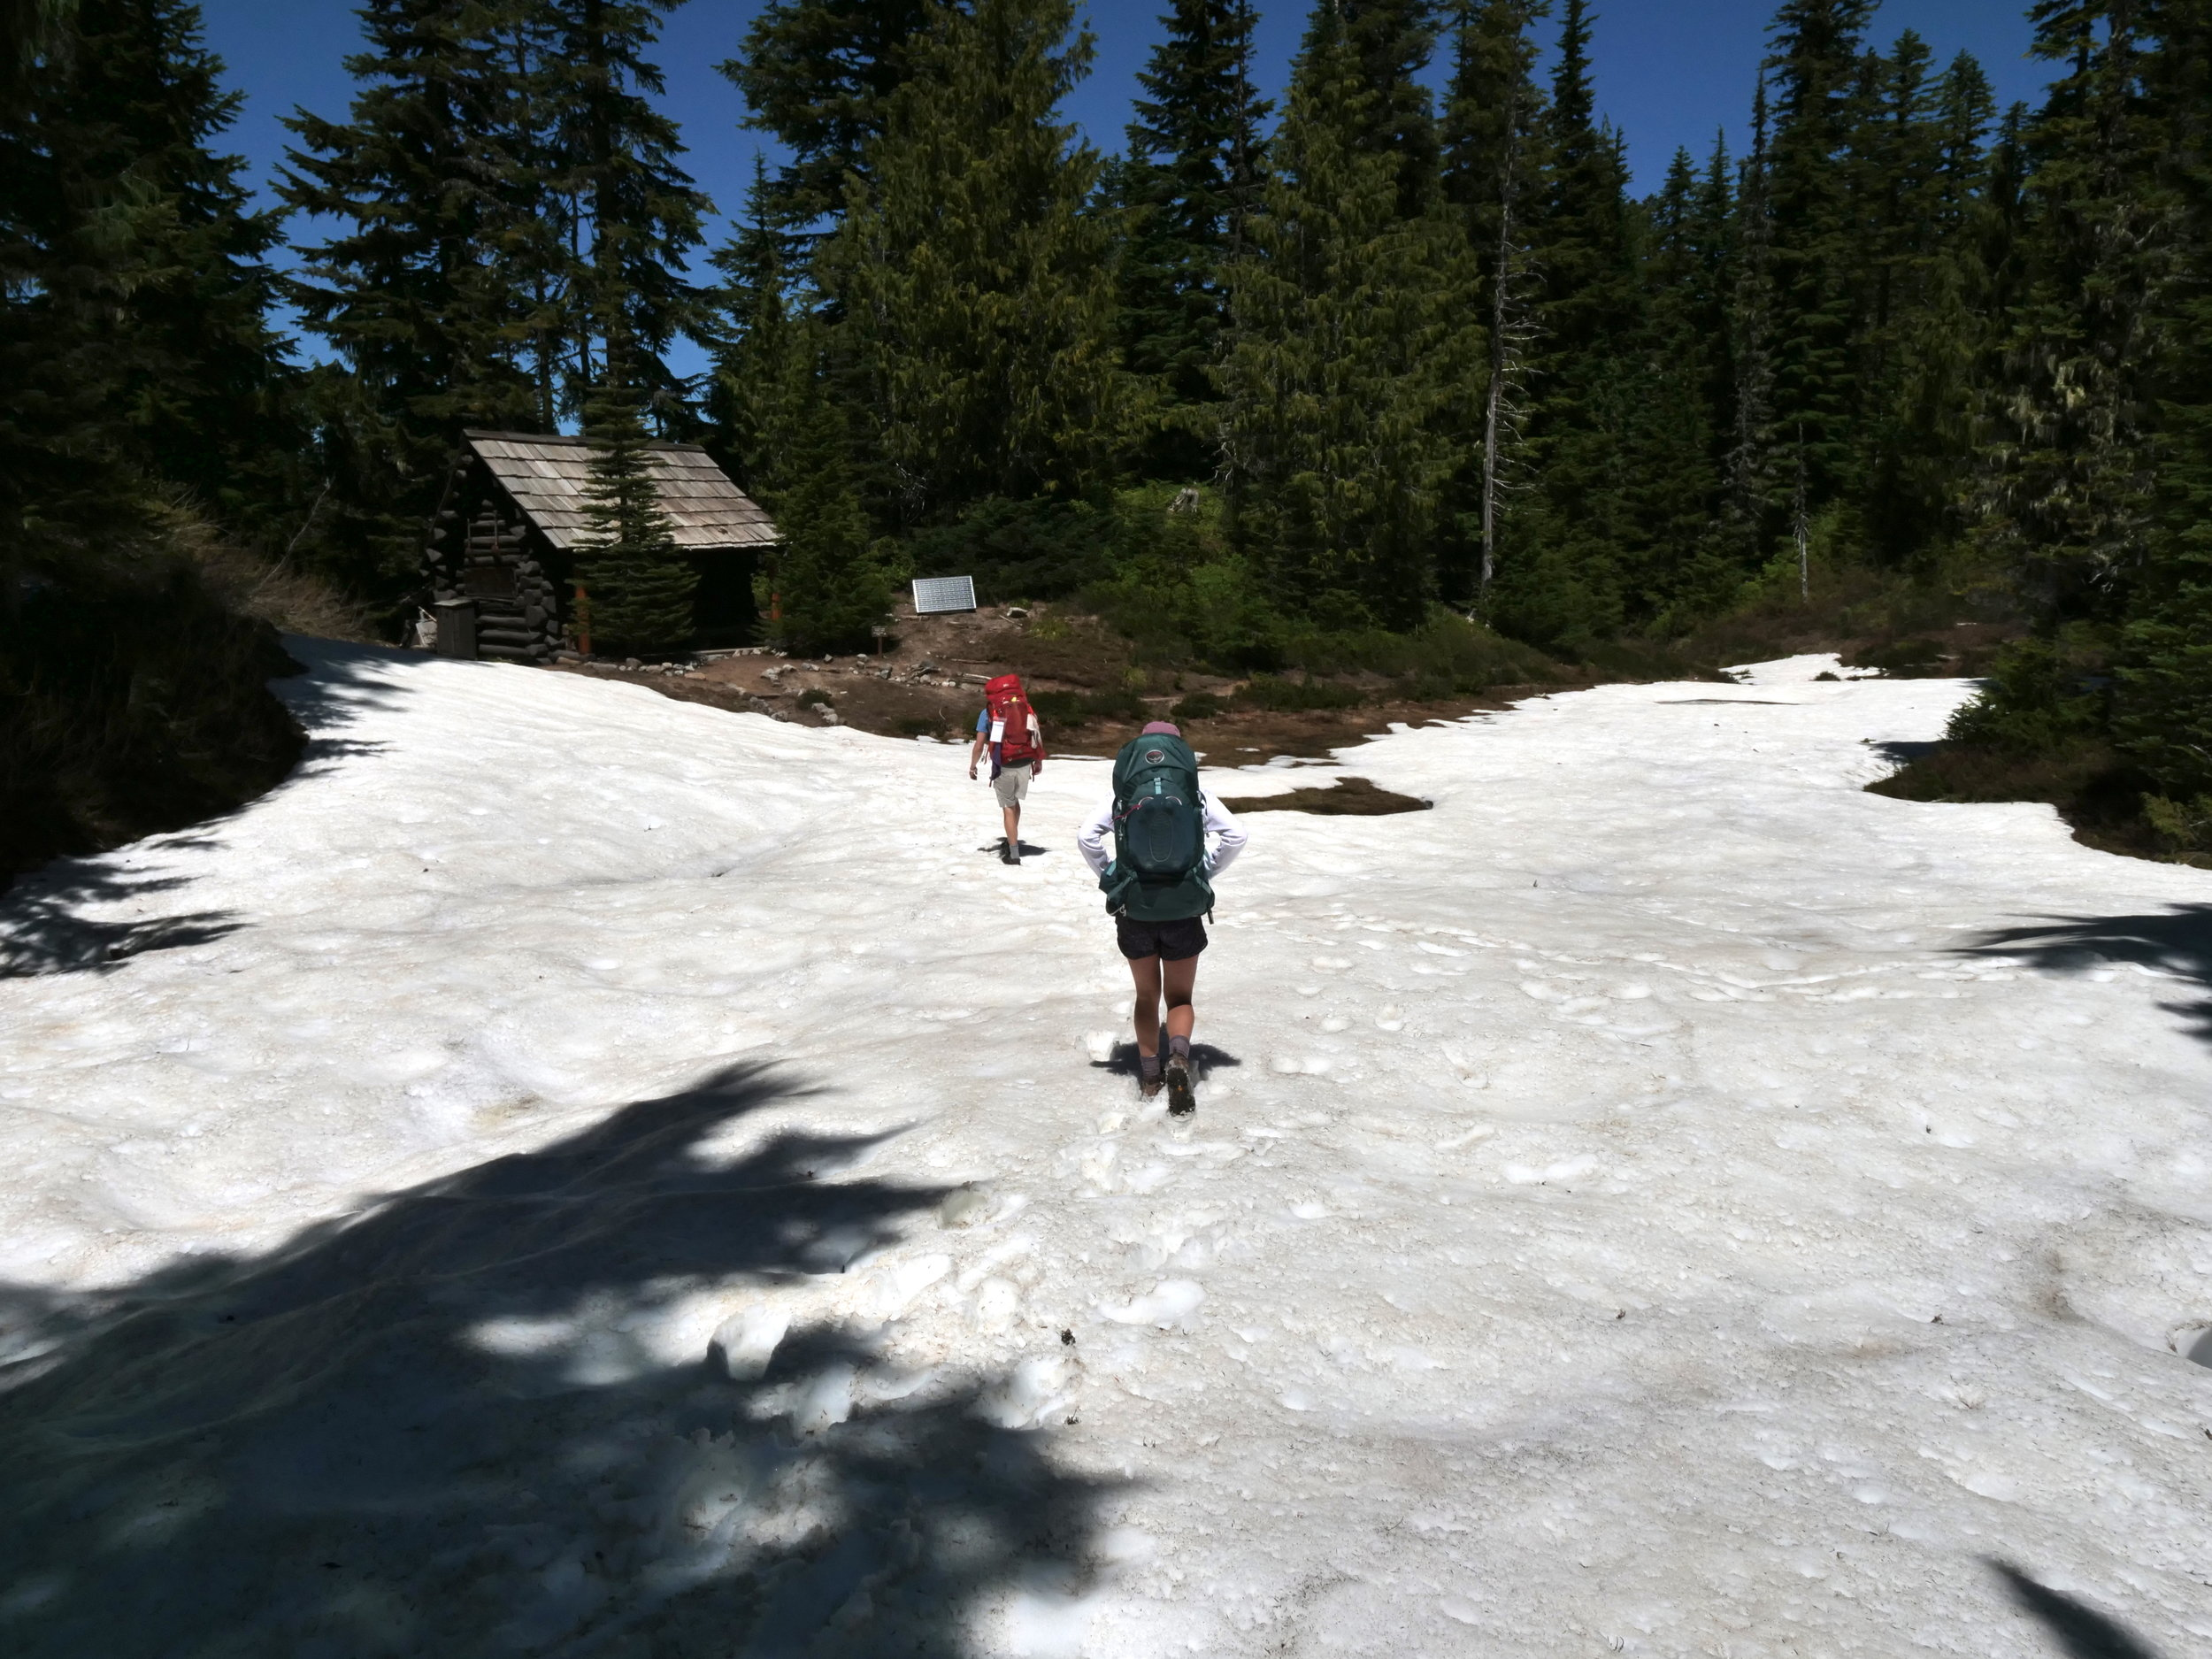 Snow at Golden Lakes Patrol Cabin (6/24/18)